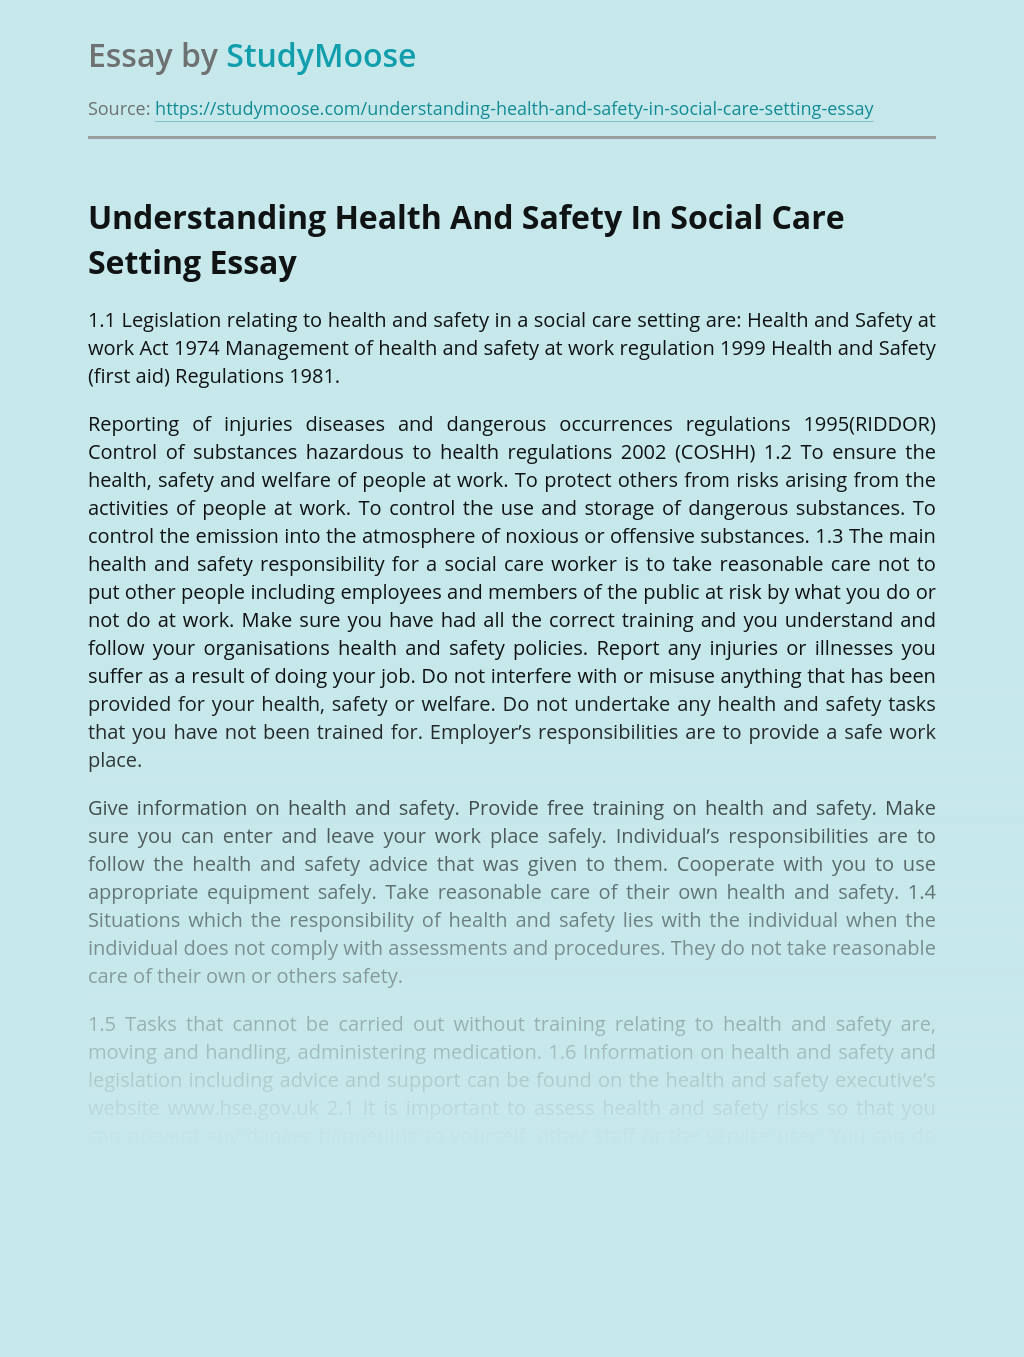 Understanding Health And Safety In Social Care Setting